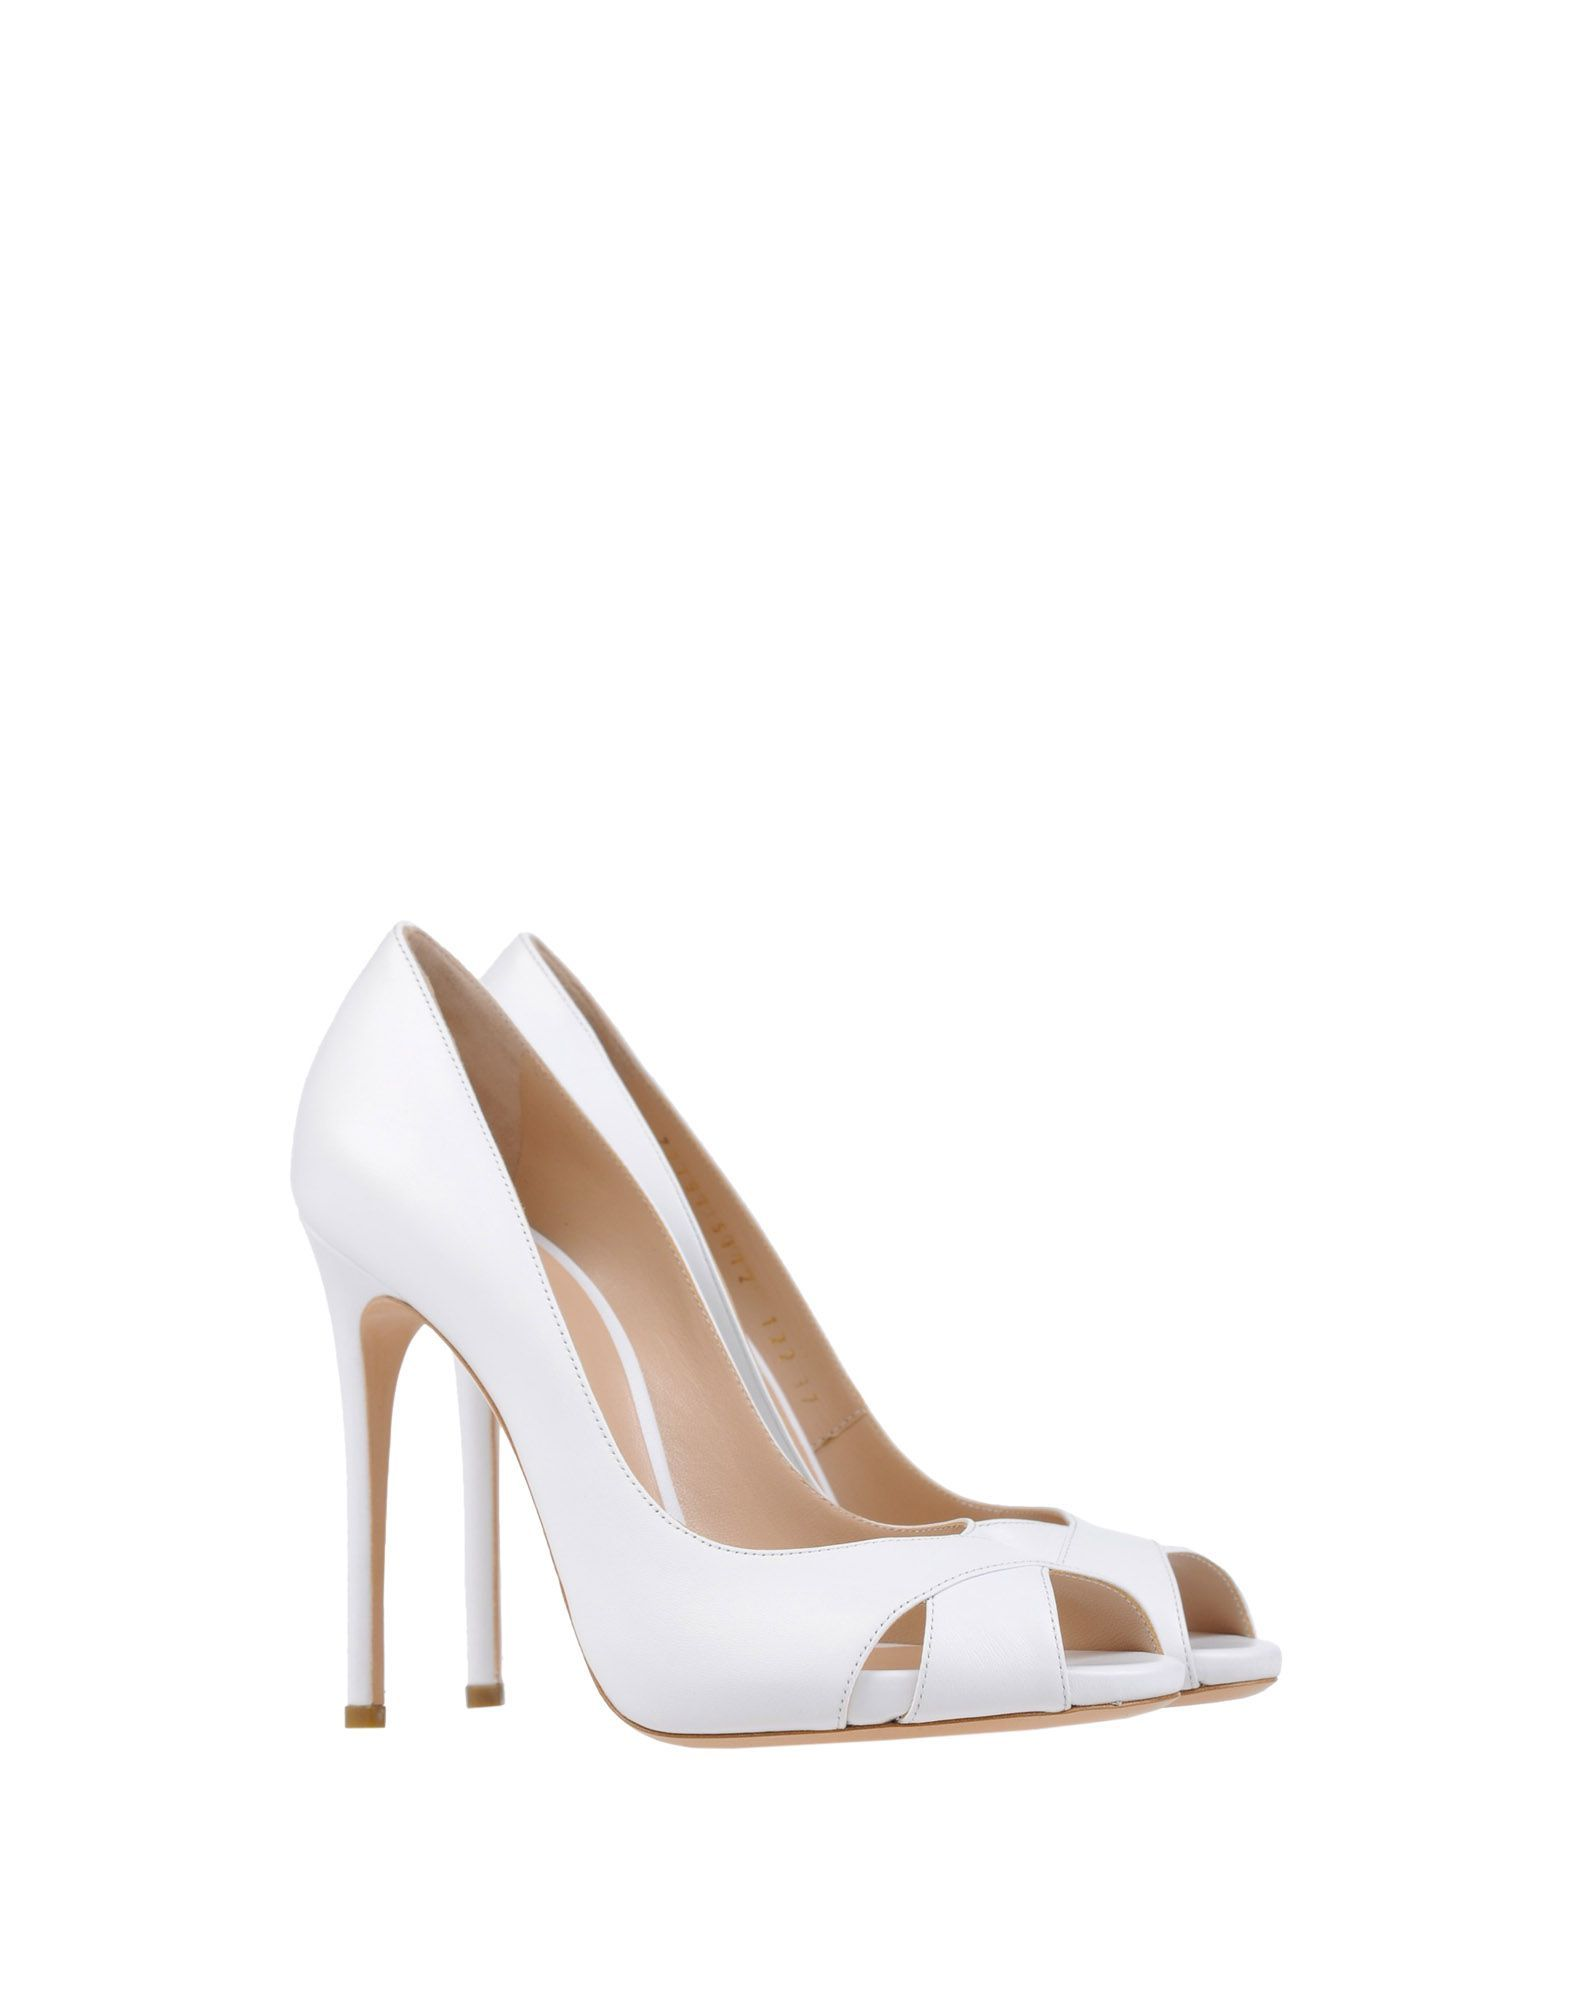 64eb5d951a4 Casadei Pump - Women Casadei Pumps online on YOOX United States - 11185542OX